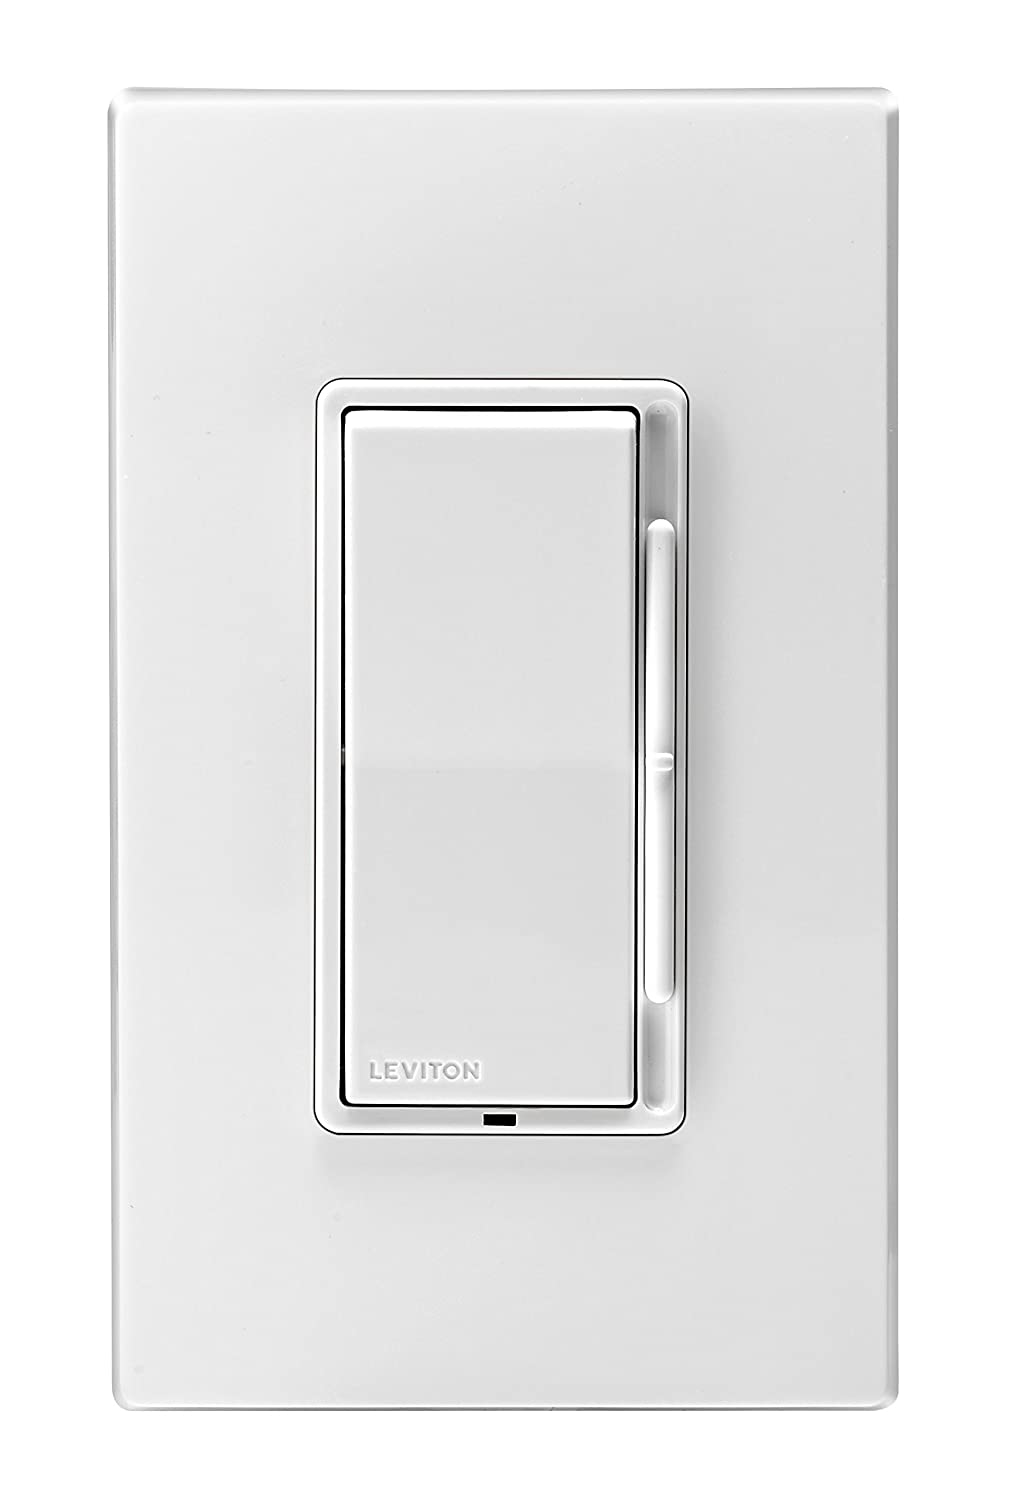 Leviton DSL06-1LZ Decora Universal Rocker Slide Dimmer, 300-Watt LED ...